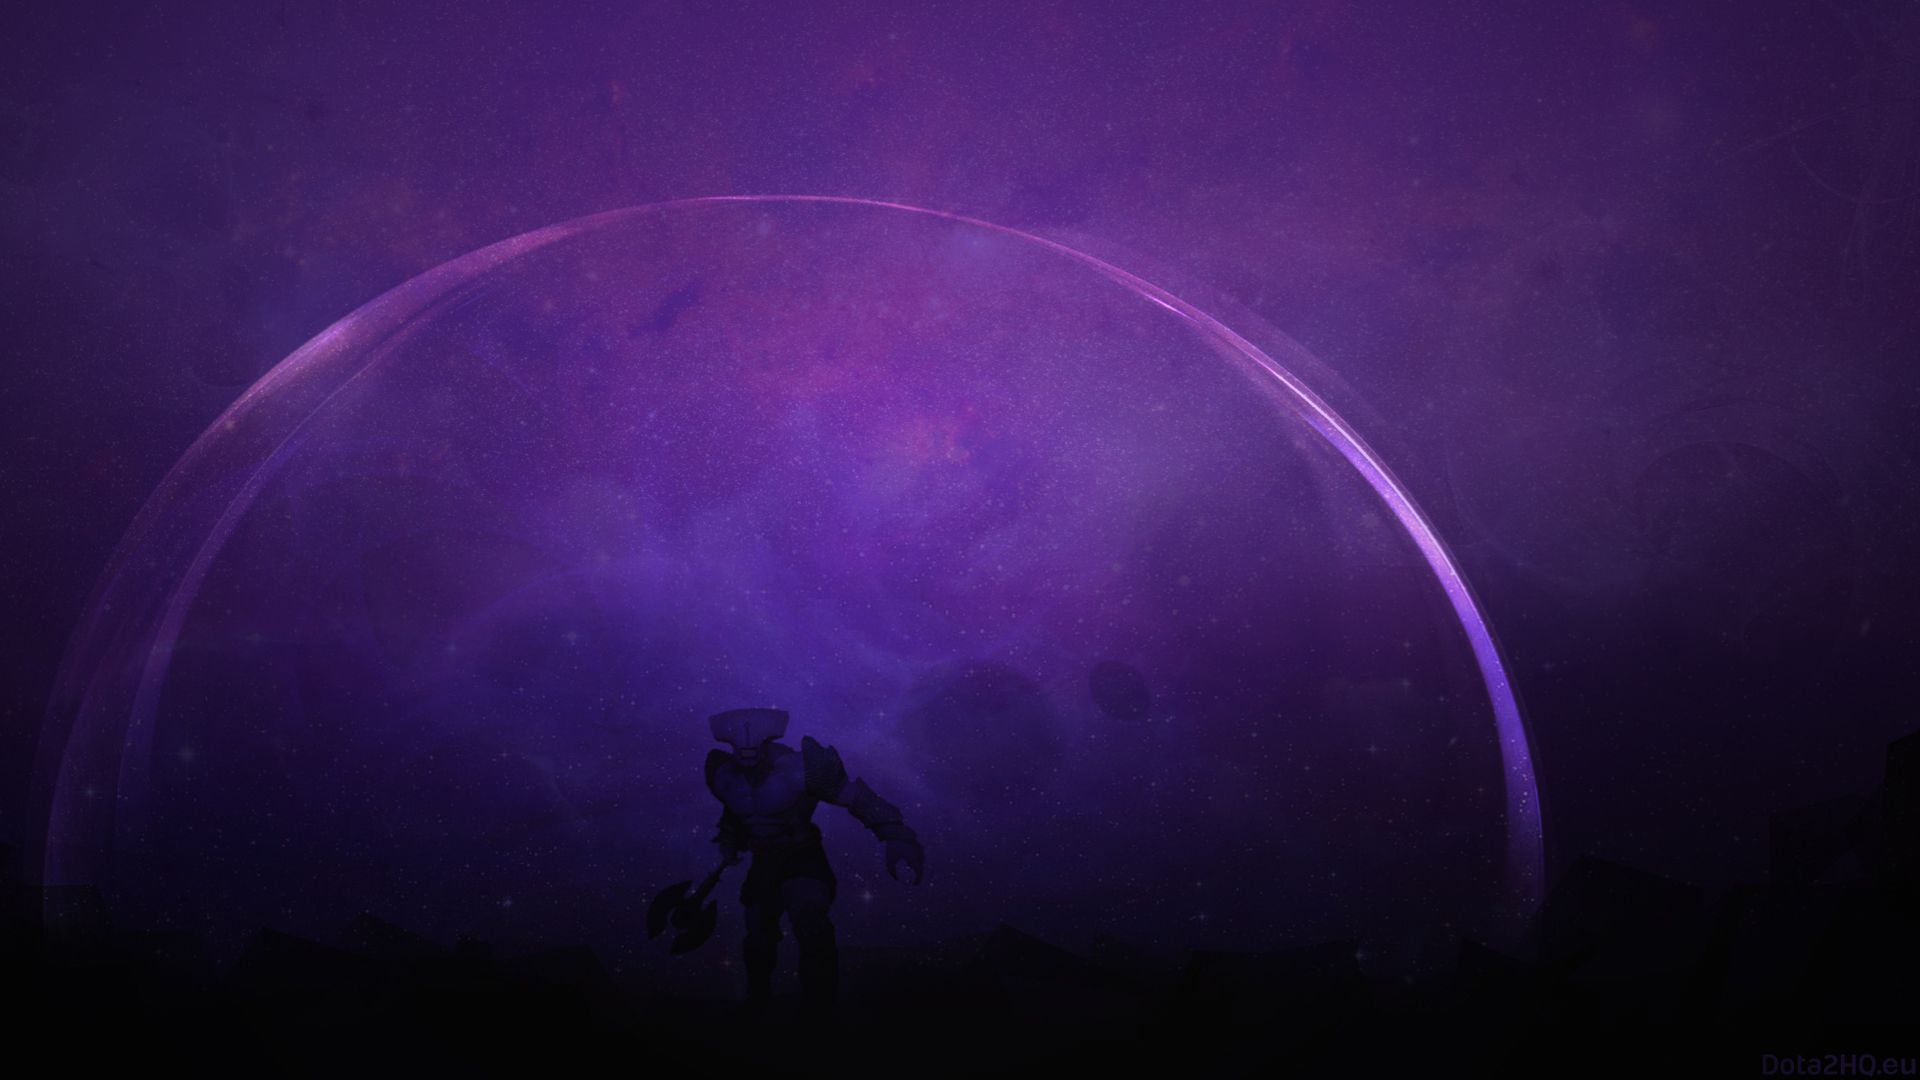 1920x1080 Wallpaper darkterror faceless void dota 2 art Art 1920x1080